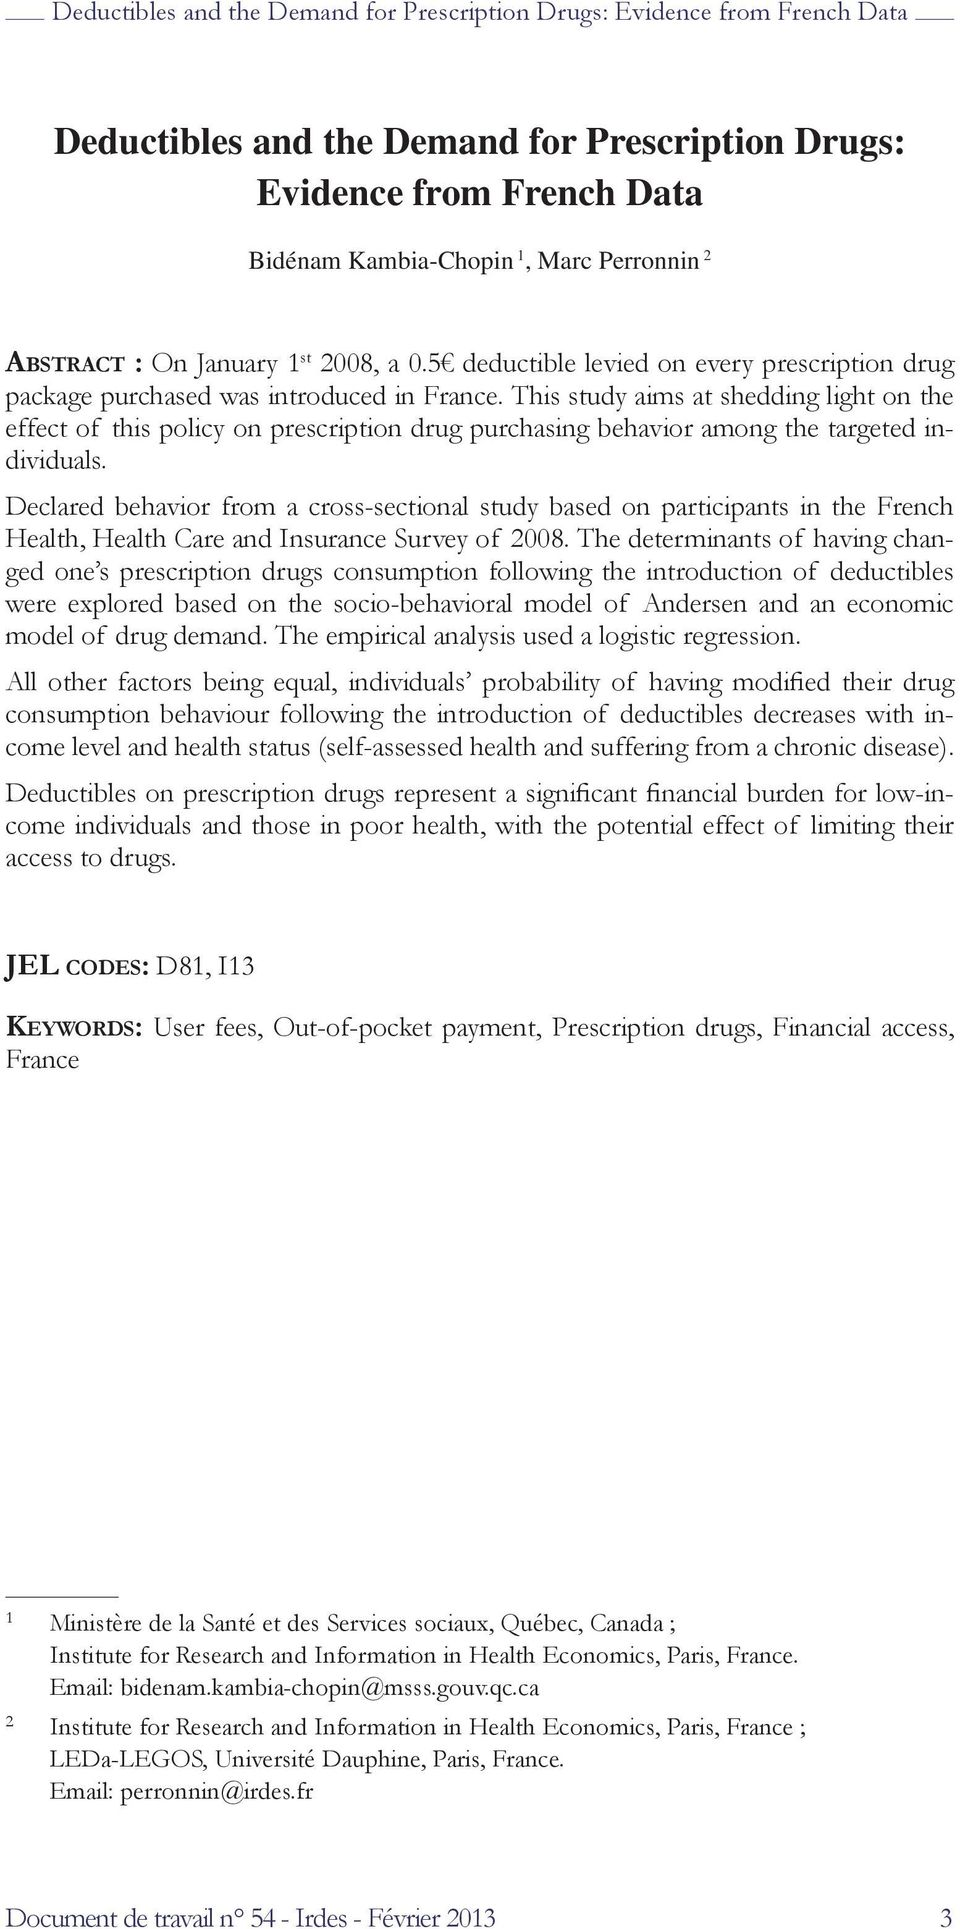 This study aims at shedding light on the effect of this policy on prescription drug purchasing behavior among the targeted individuals.